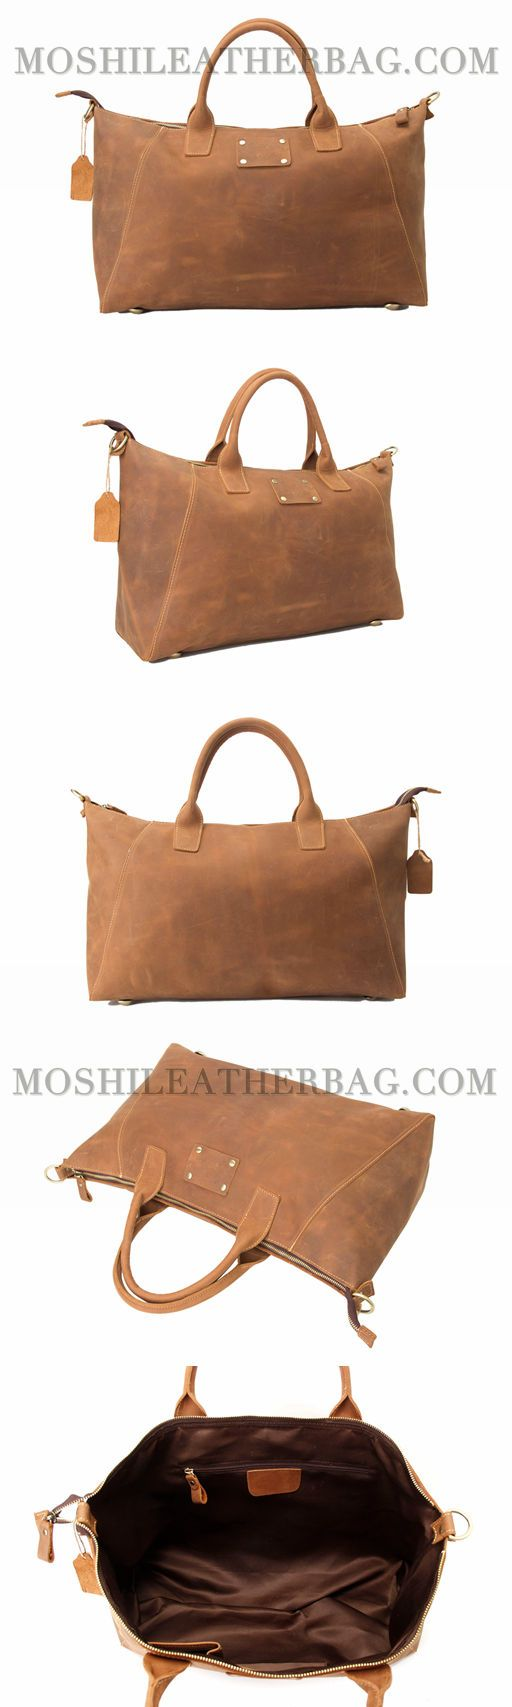 Handmade Genuine Leather Briefcase, Tote Bag, Messenger Shoulder Bag ZB03